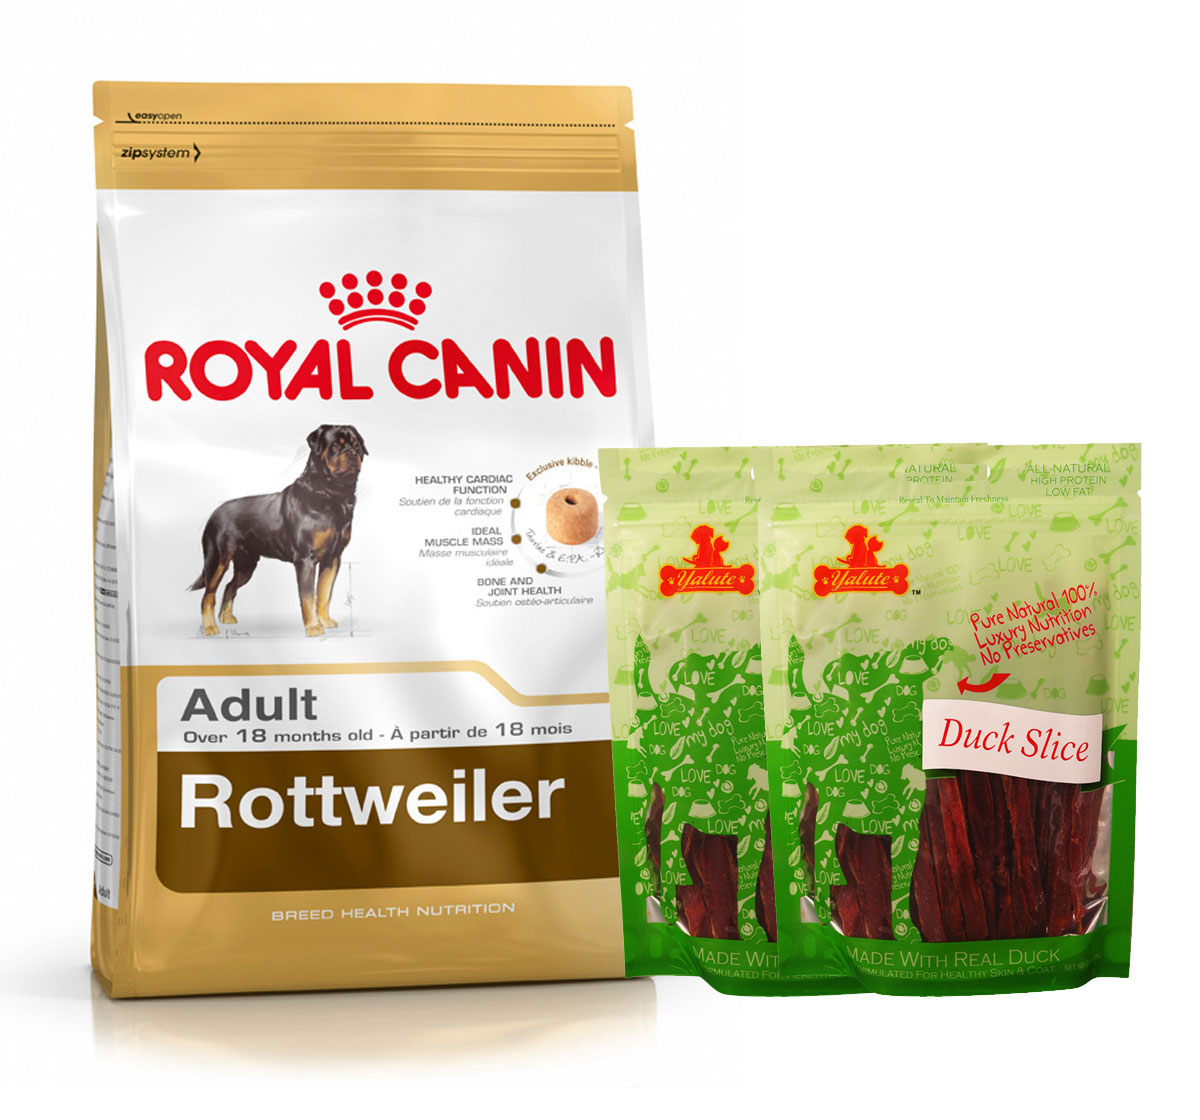 Royal Canin Rottweiler Adult - 3 Kg  With Duck Slices